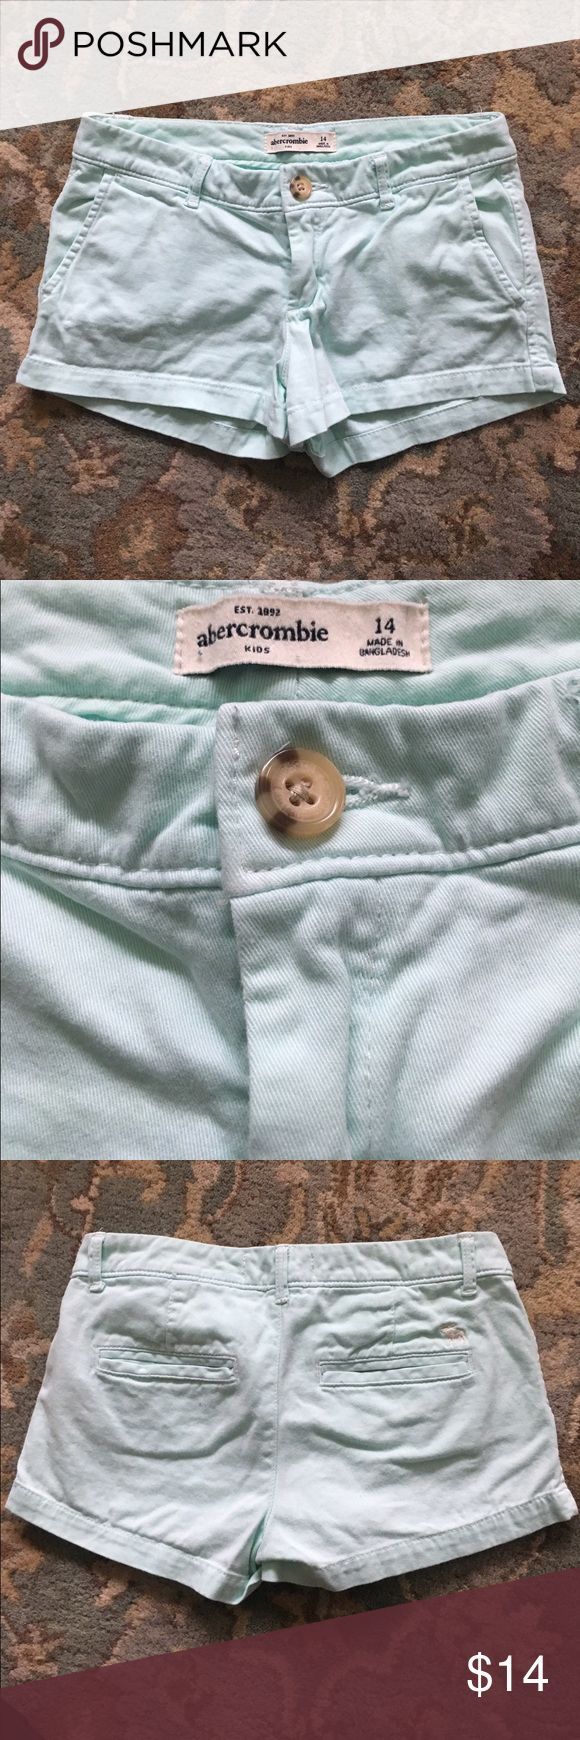 Girls Abercrombie Kids Mint Green Shorts Adorable Abercrombie Kids Girls size 14 shorts in mint green. These shorts are in great shape with no stains. abercrombie kids Bottoms Skorts